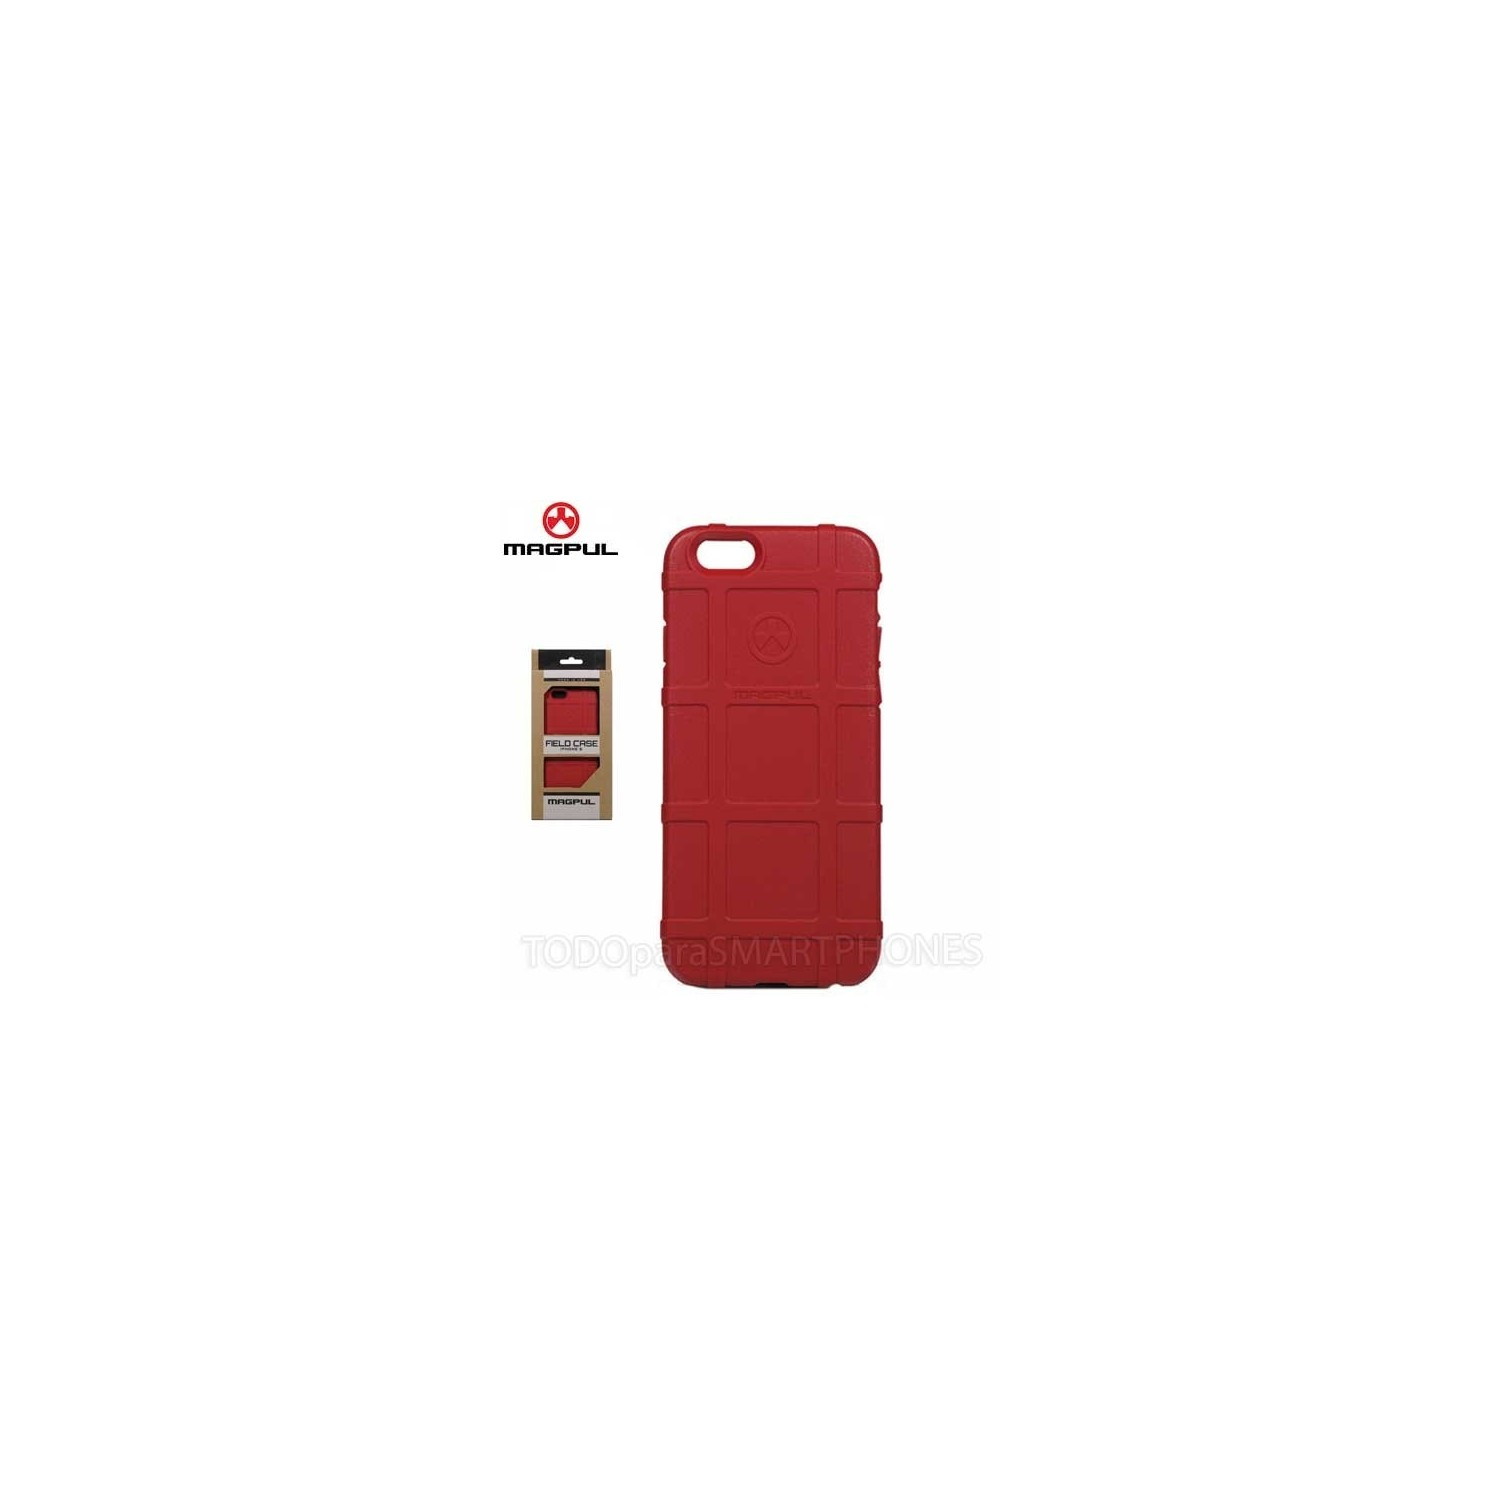 Case - Magpul field case for iPhone 6 Plus Red